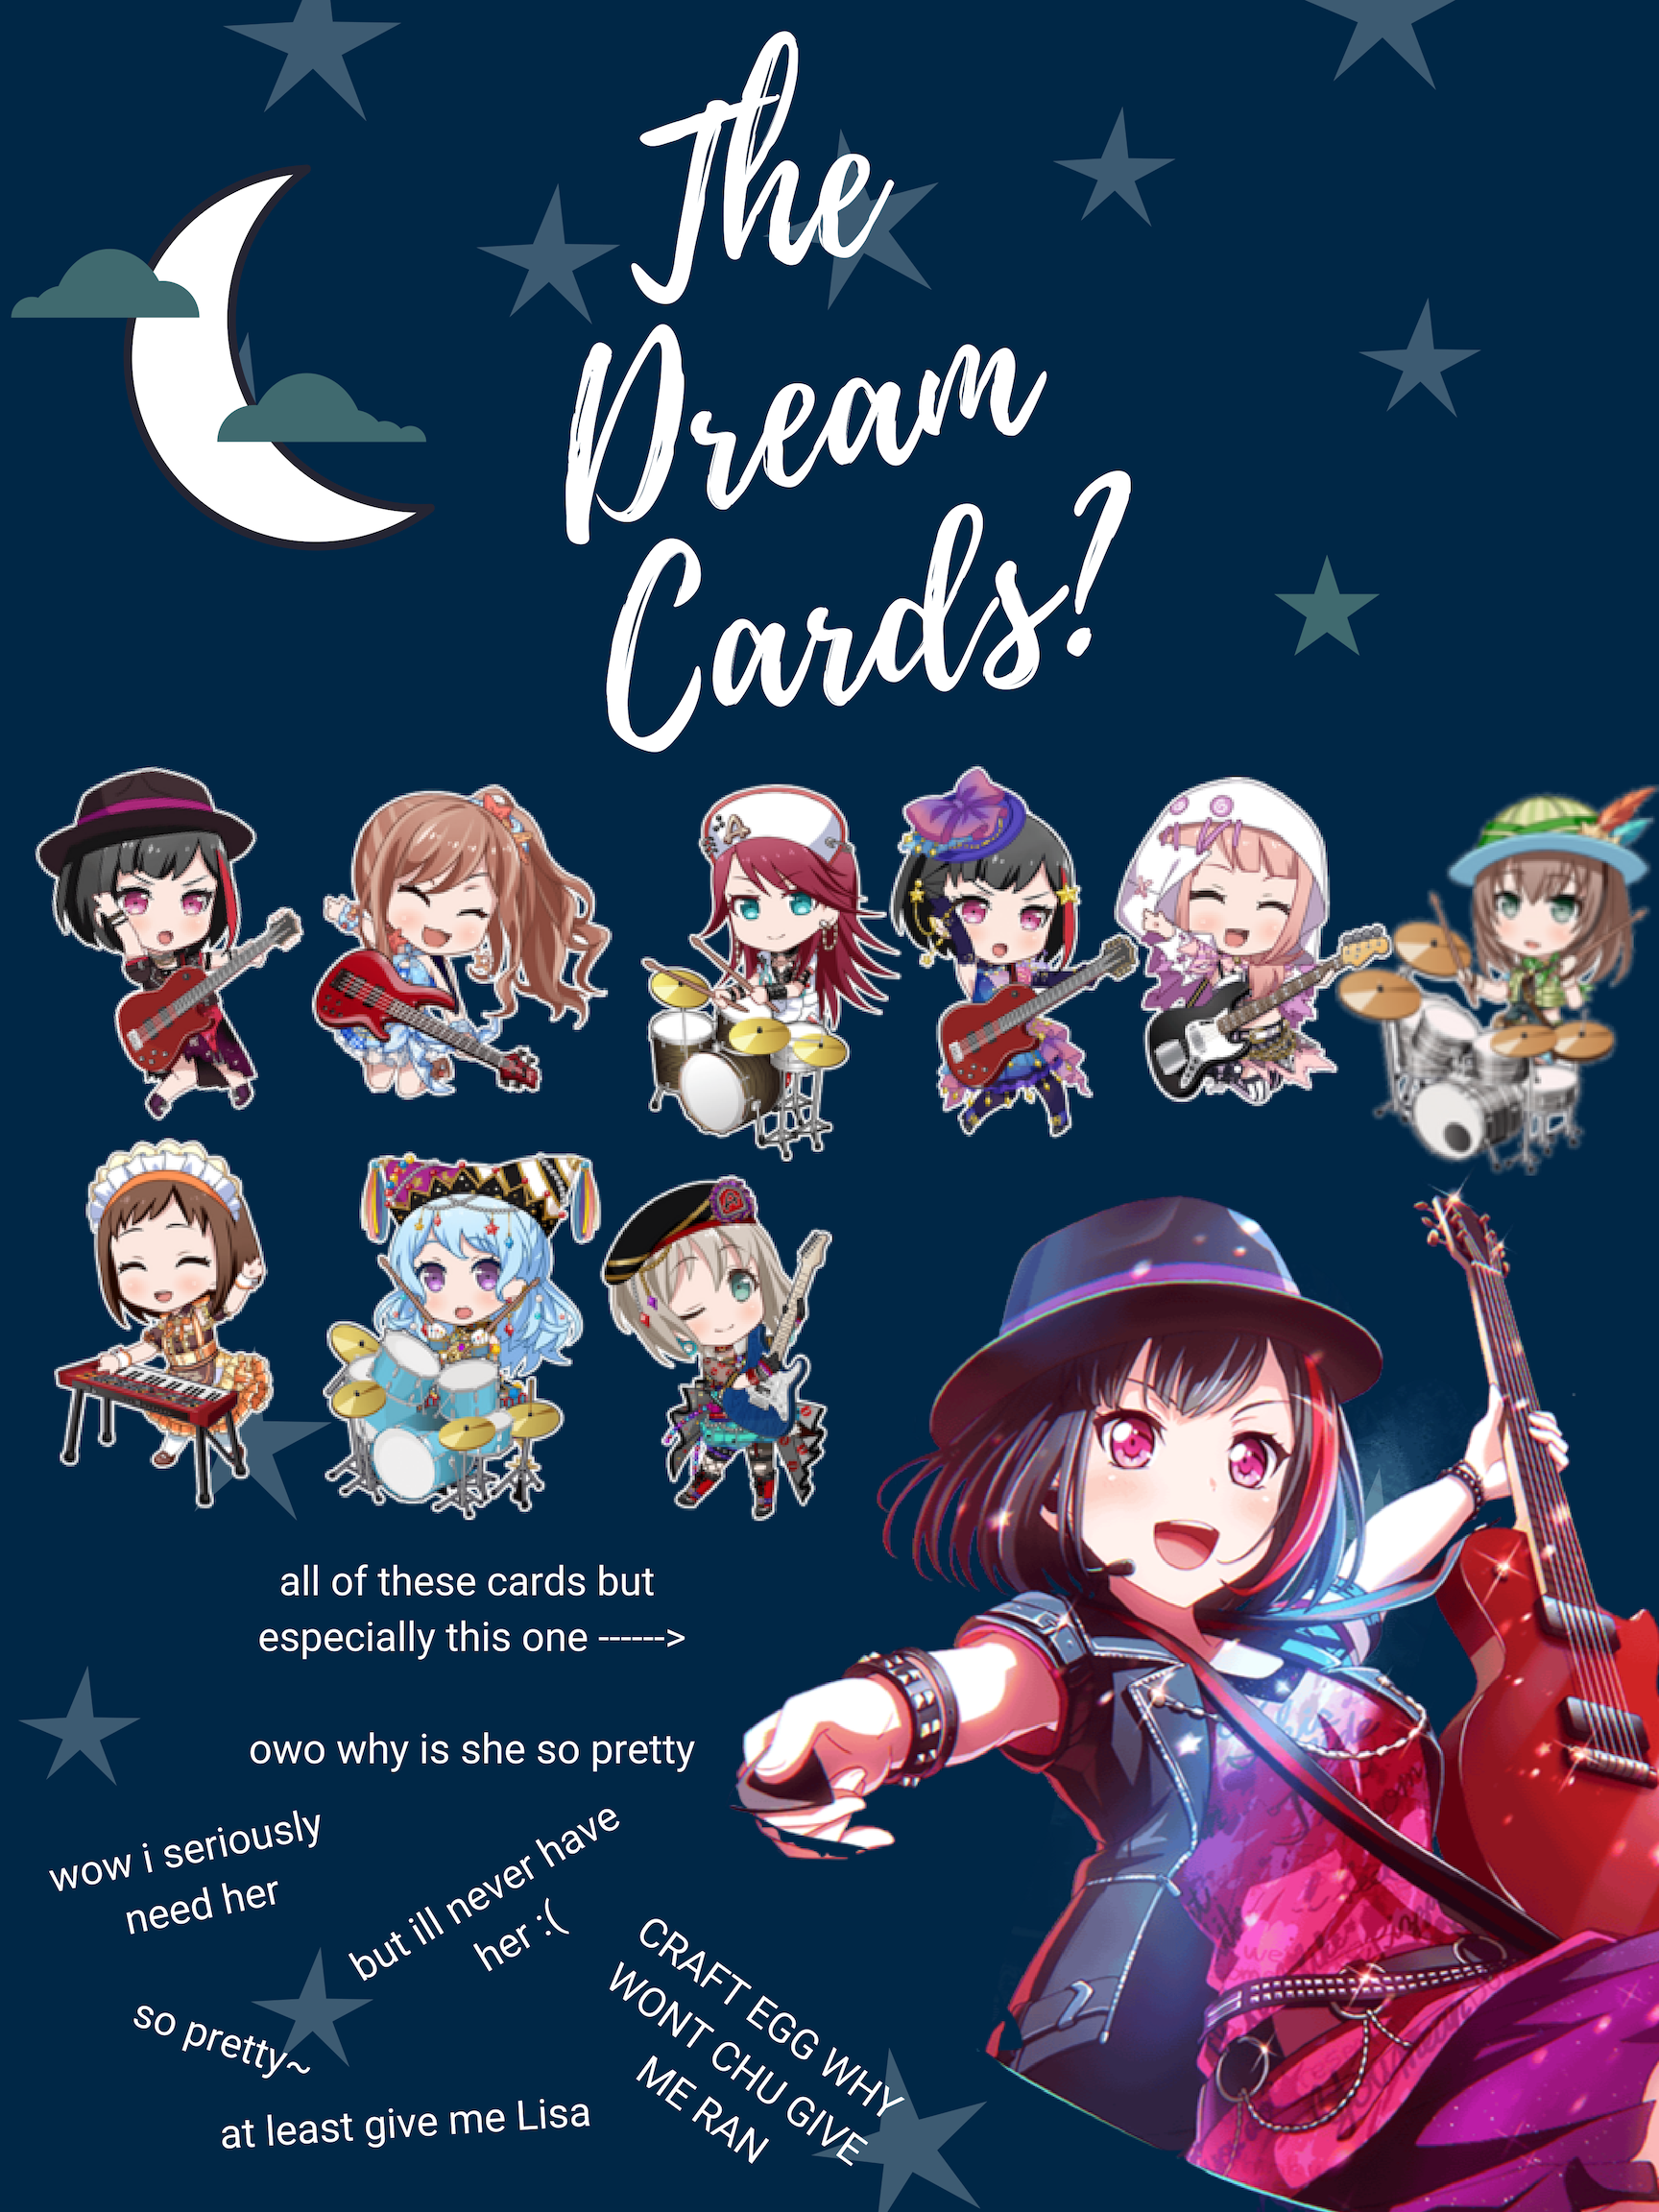 cards ill never have